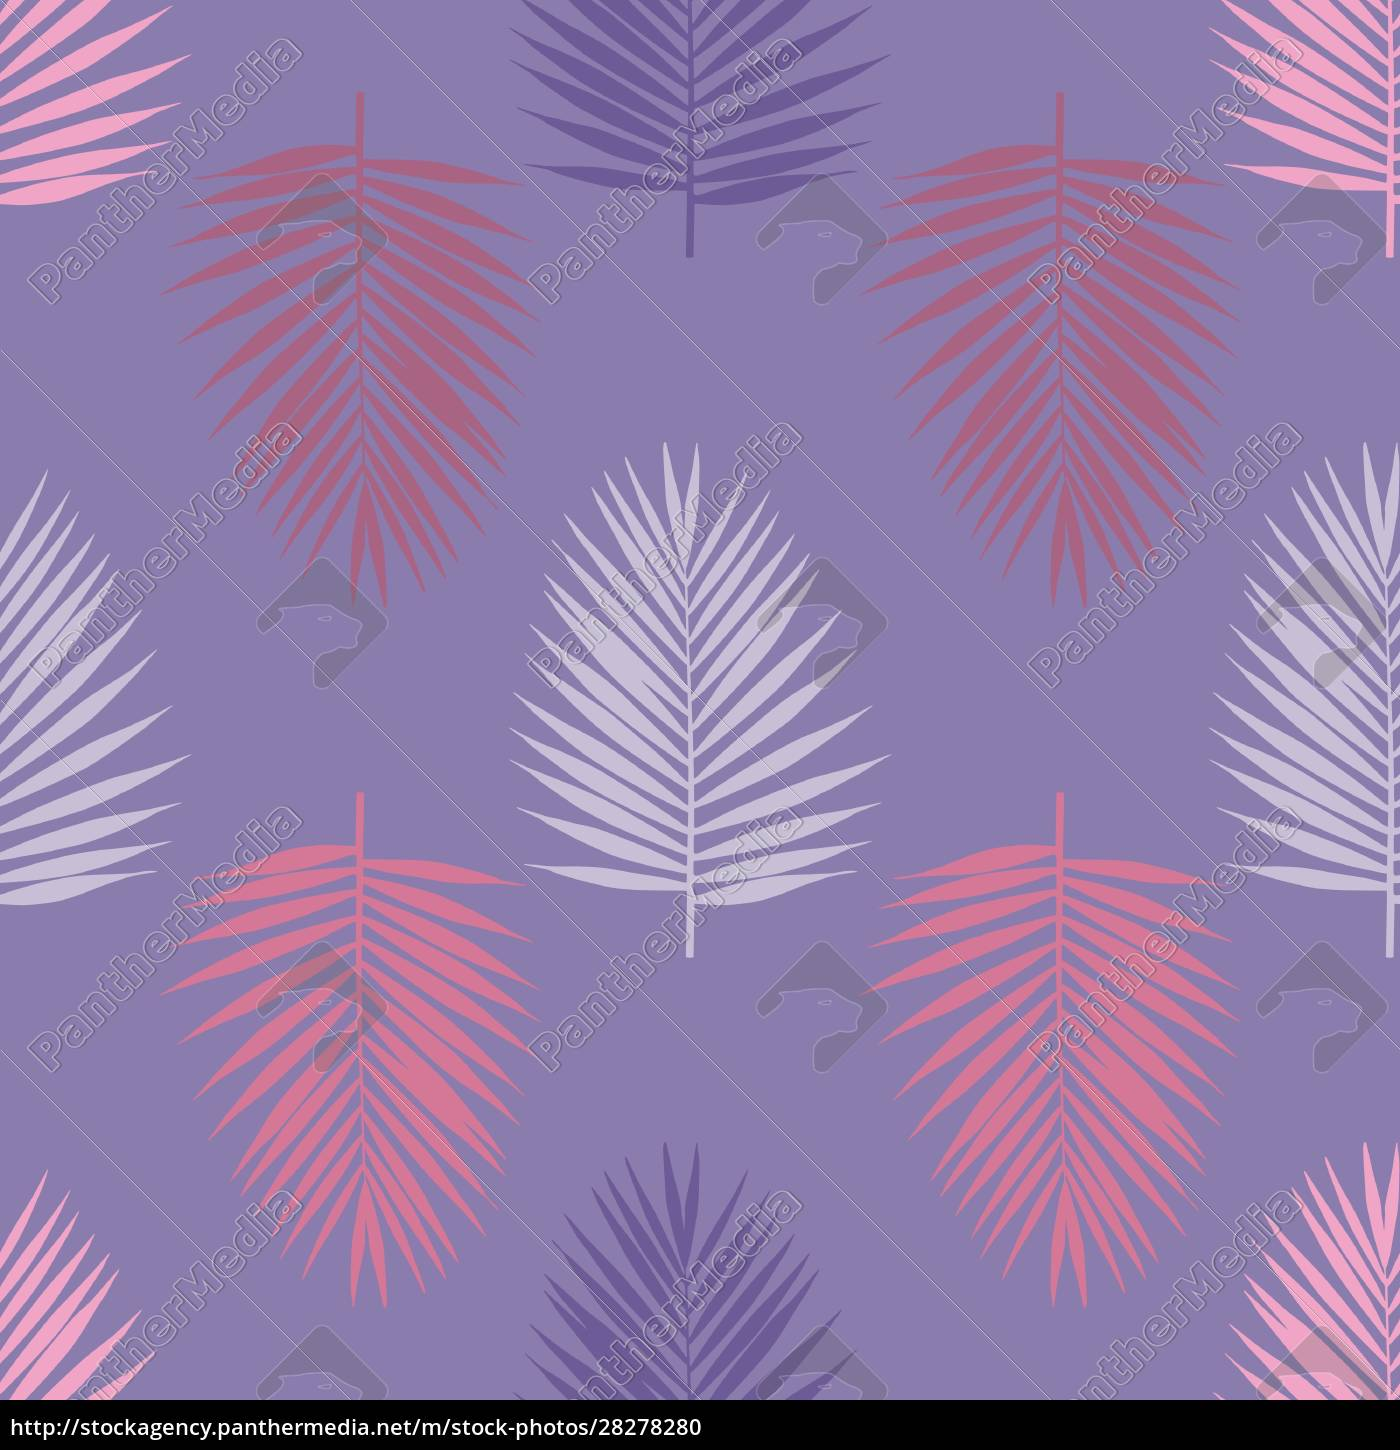 ultra, violet, tropical, palm, leaves, seamless - 28278280